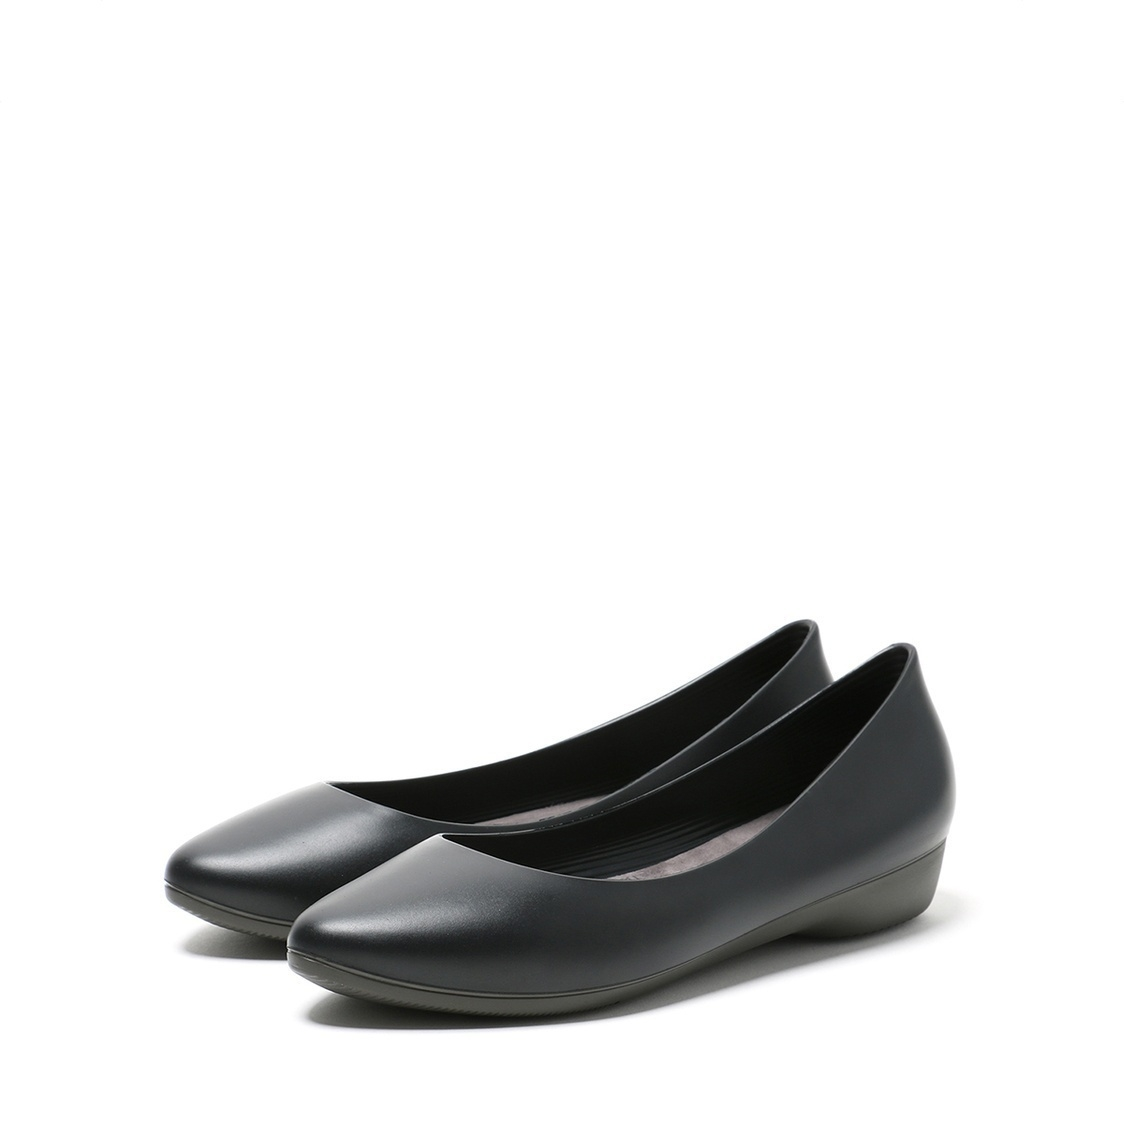 F3 Flat-Pointed Heel height 3cm Solid Black